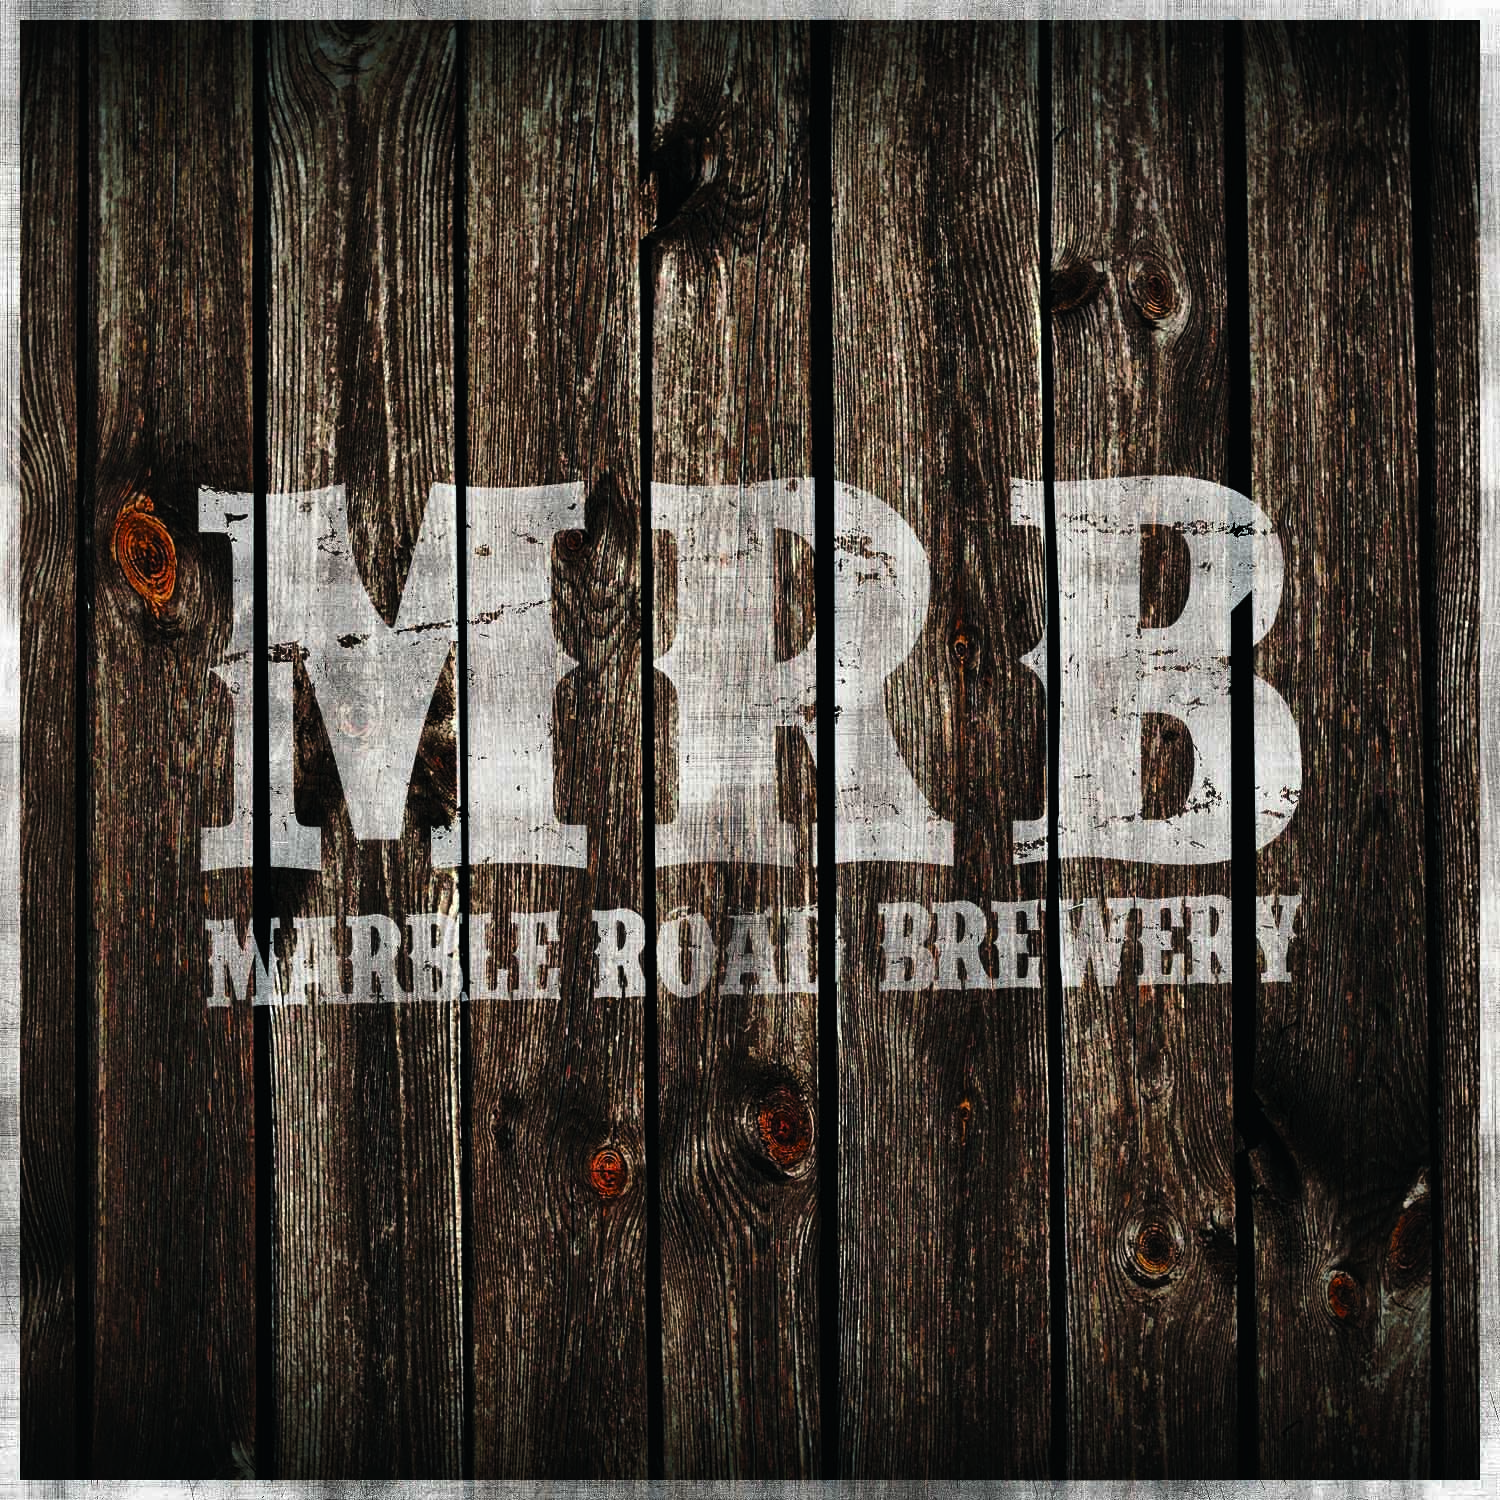 Marble Road Brewery - Brand